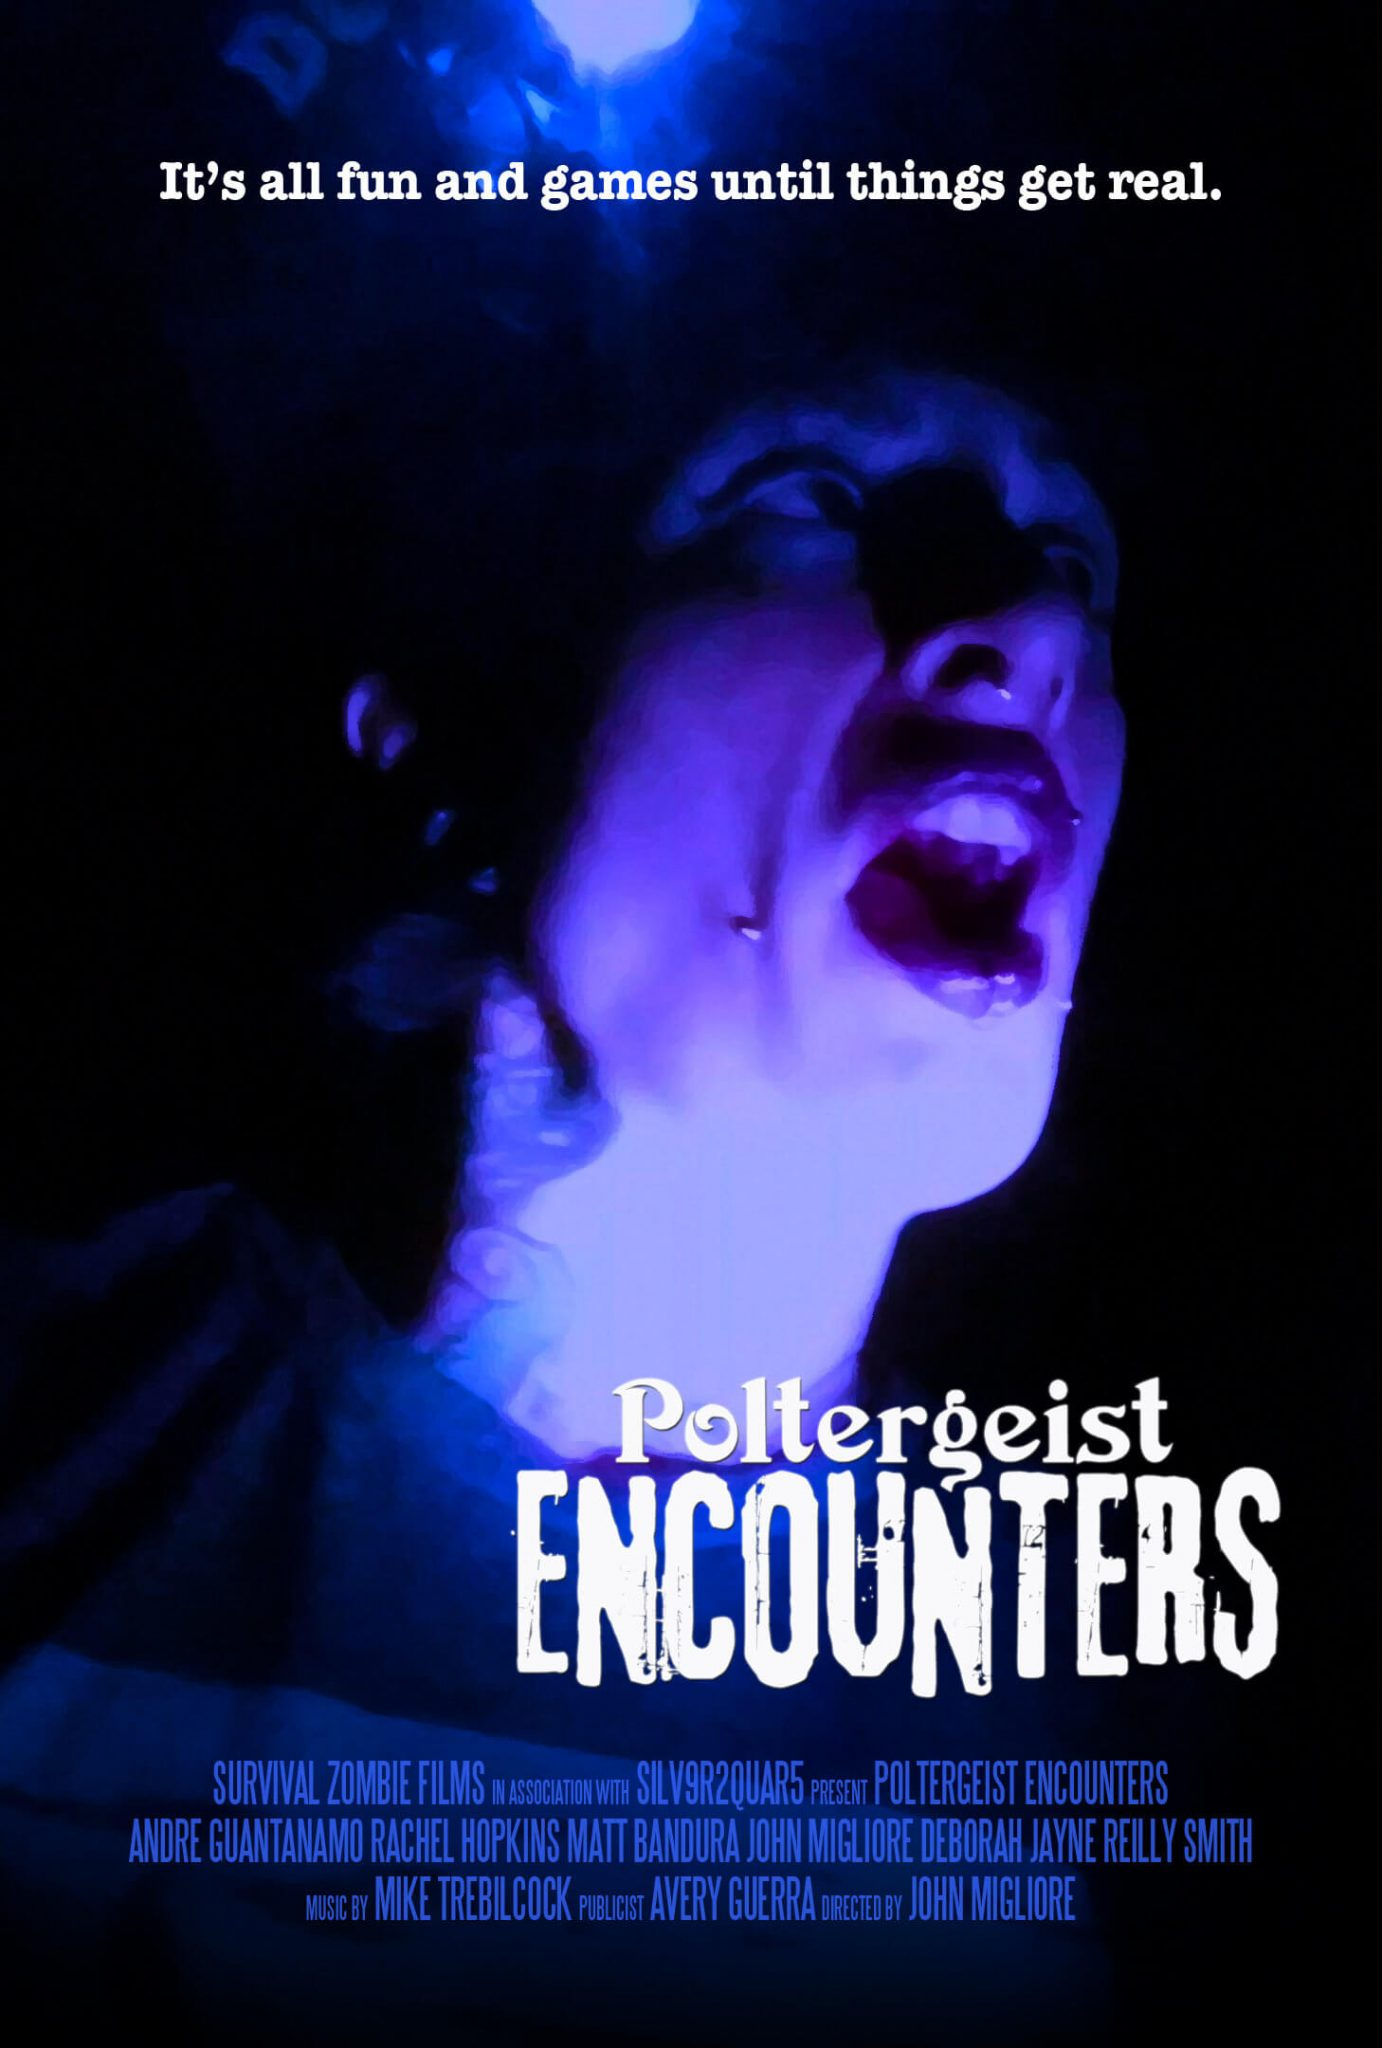 poltergeist enocunters 1 - Experience Poltergeist Encounters in New Trailer